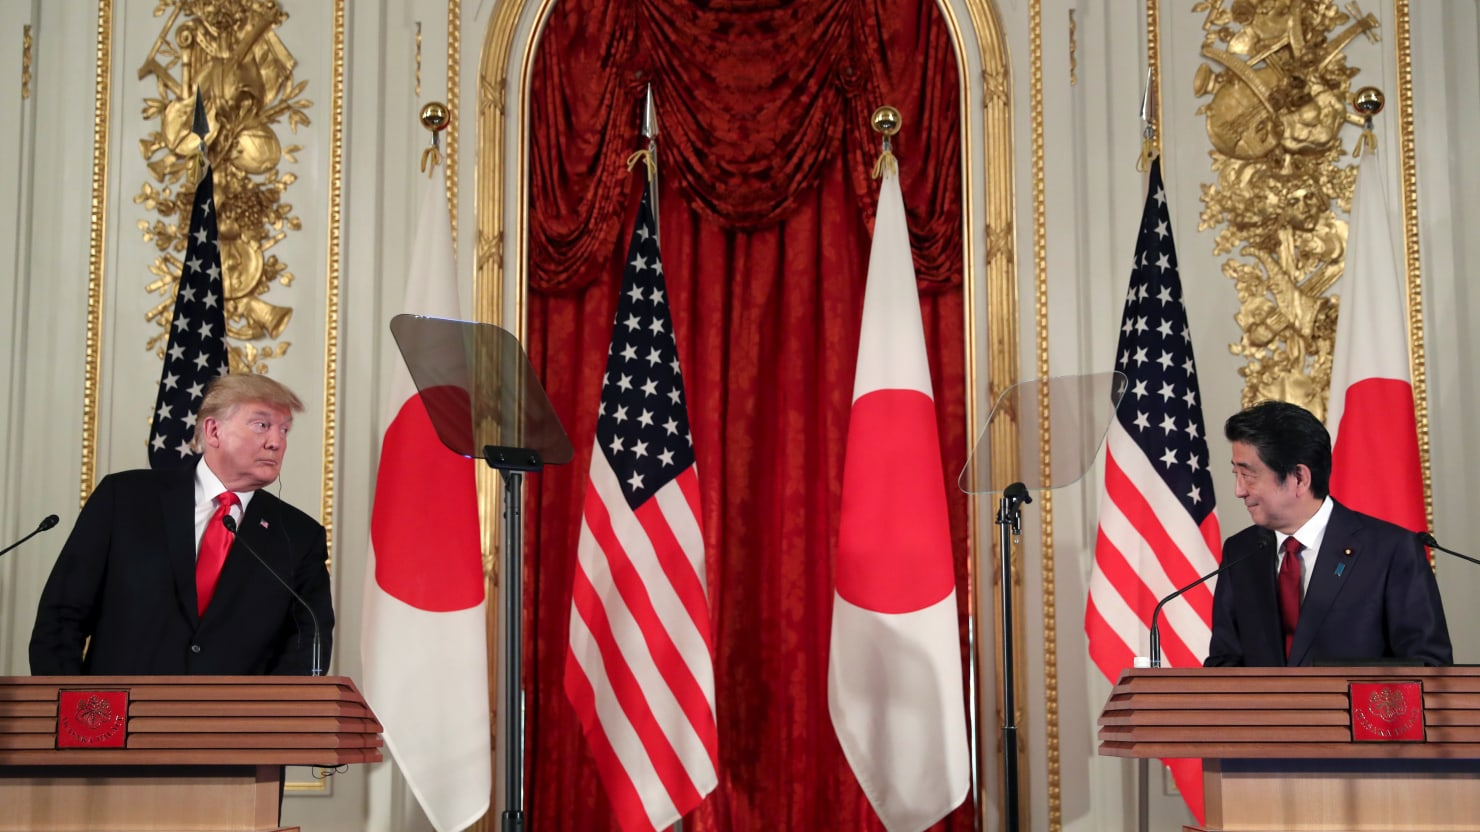 Trump in Japan: Not Ready to Deal With China, Kim Jong Un is Great